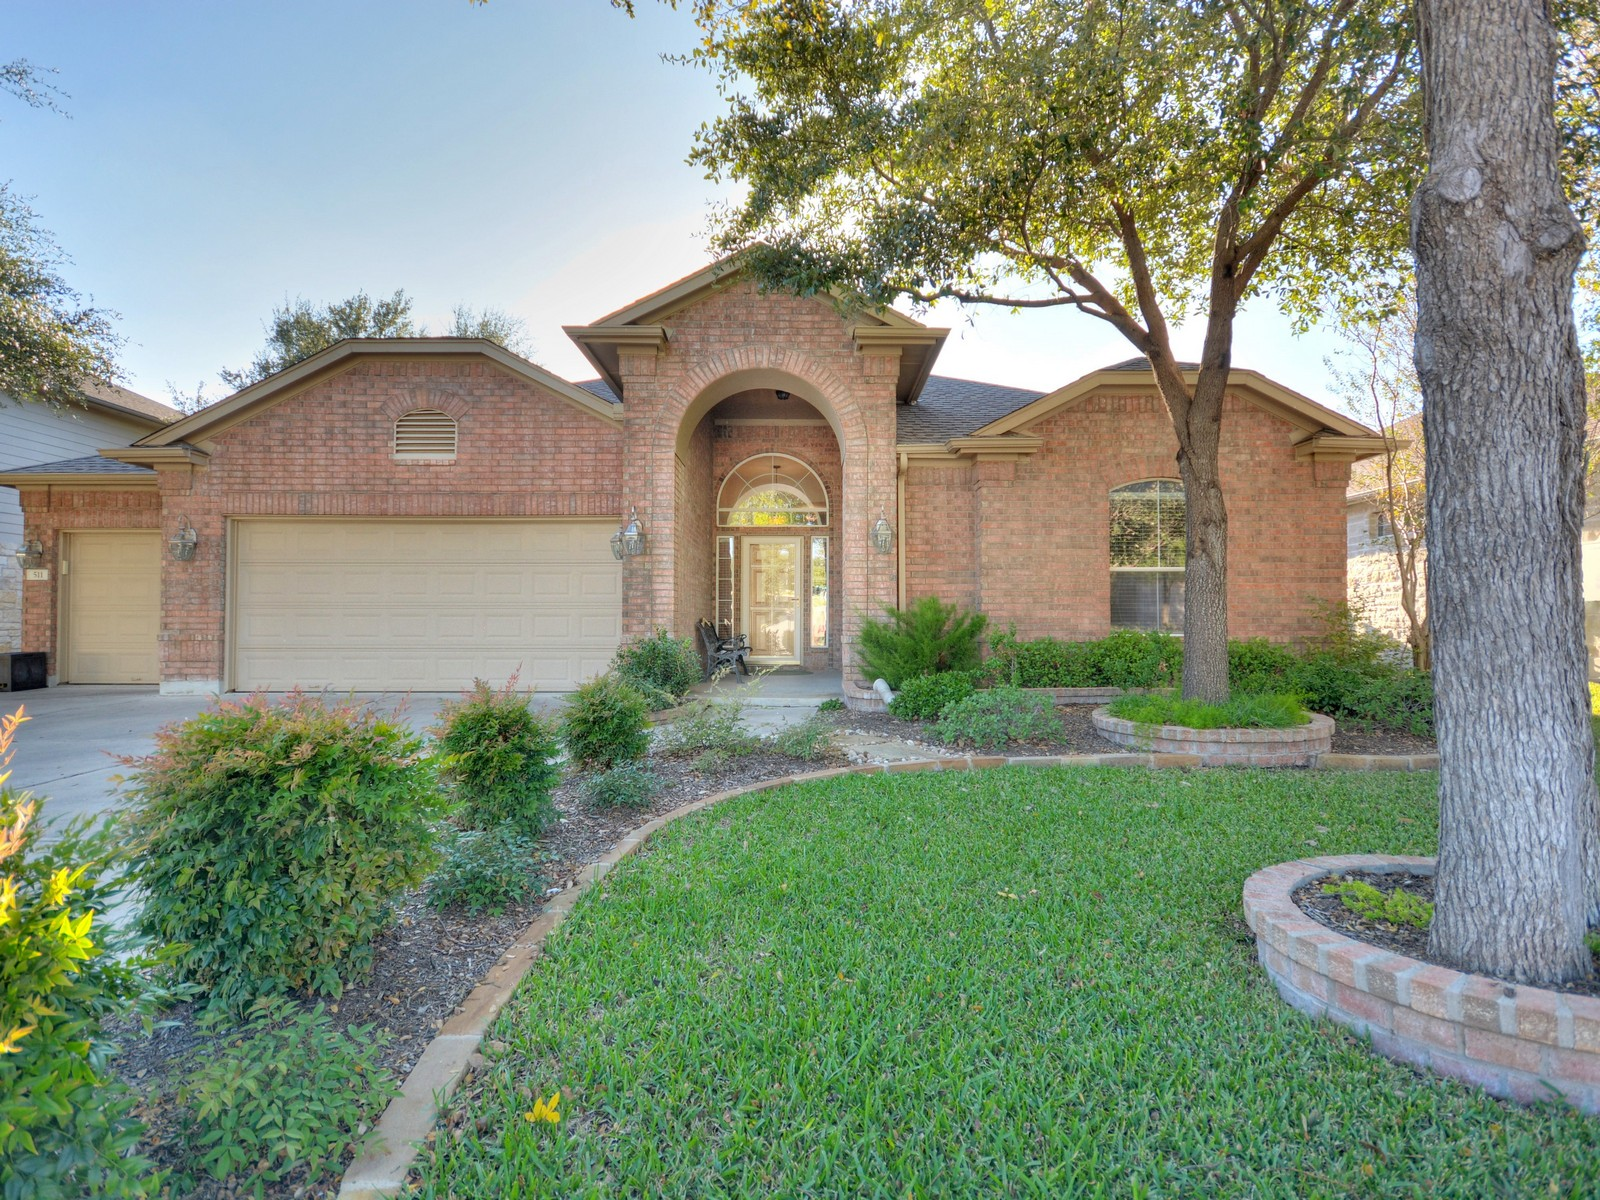 Single Family Home for Sale at Pristine One Story on Greenbelt 511 Mandarin Flyway Cedar Park, Texas 78613 United States